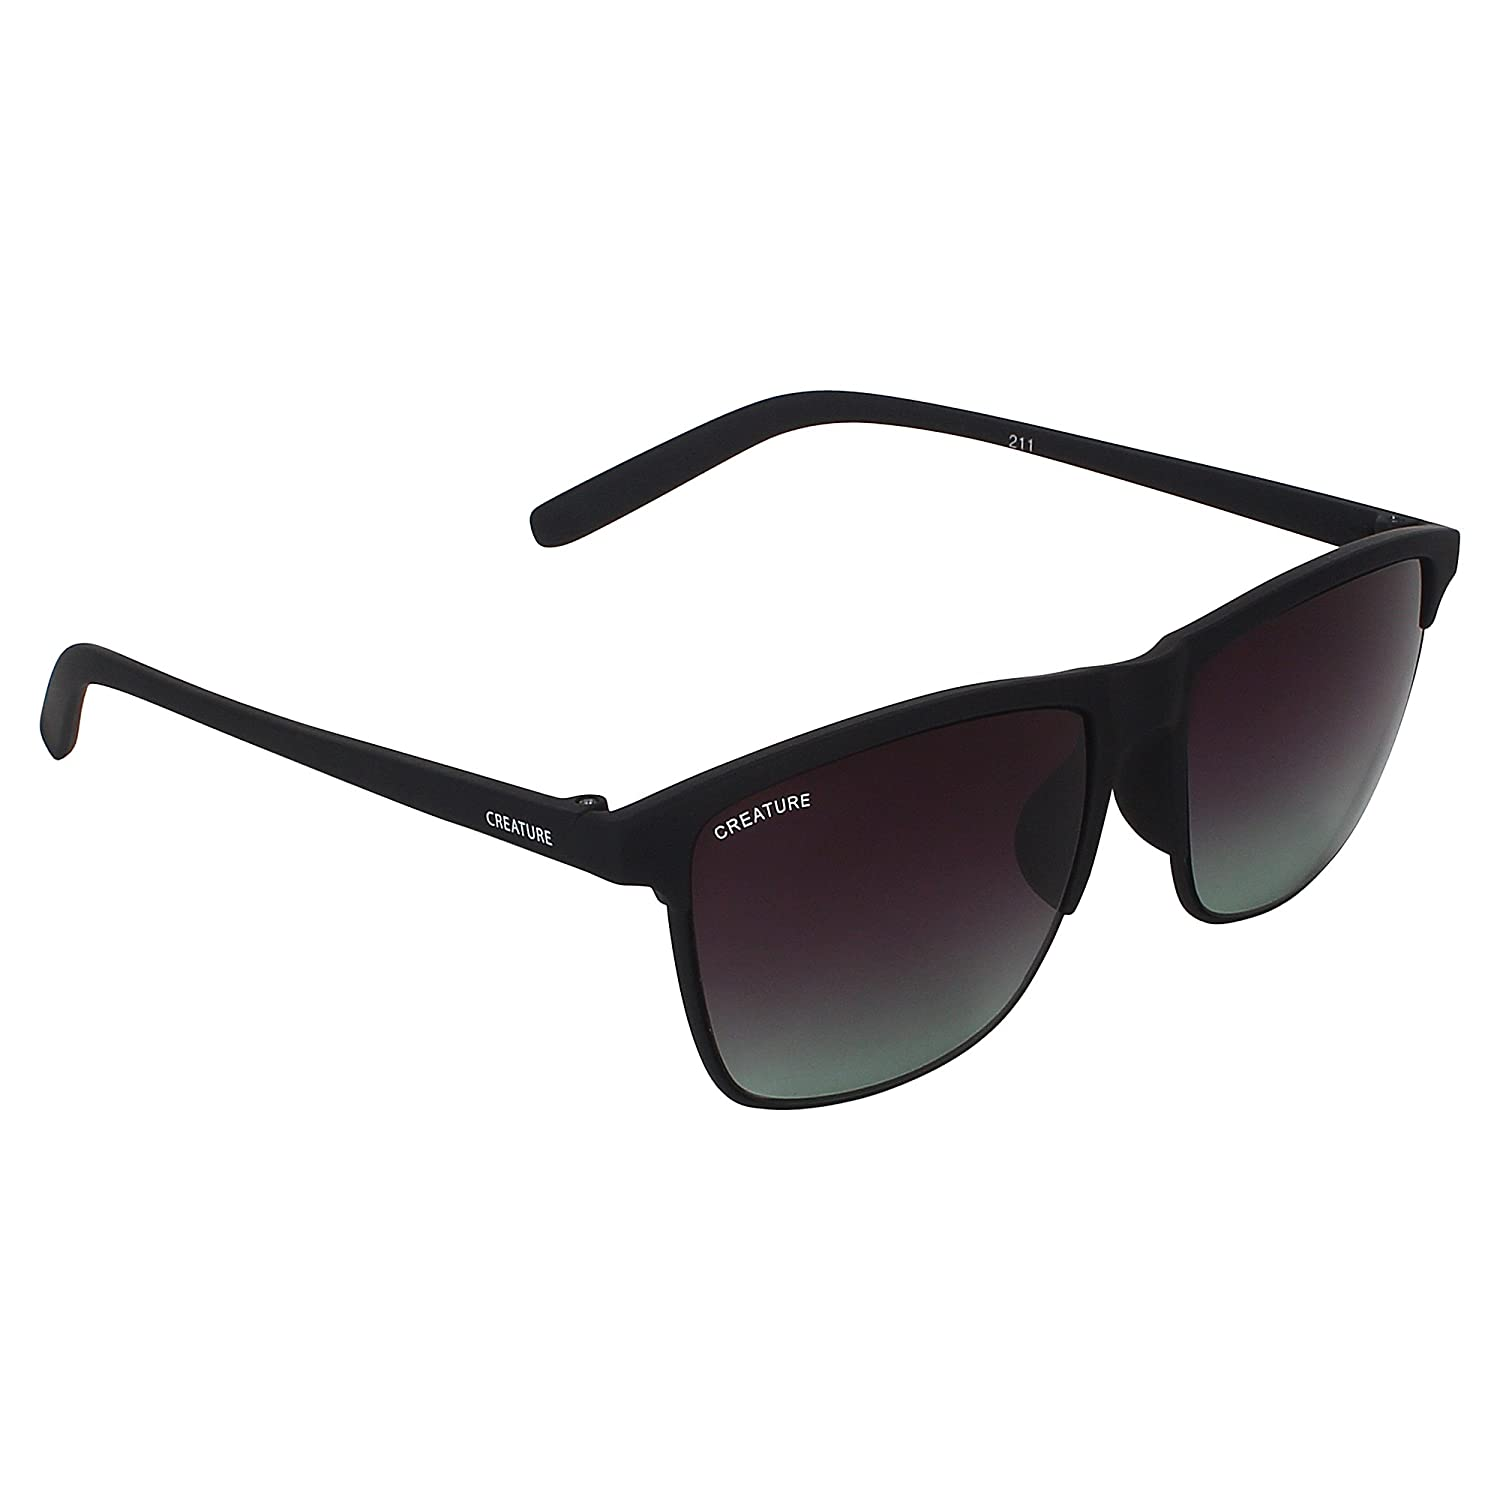 Matt Finish Wayfarer UV Protected Unisex Sunglasses